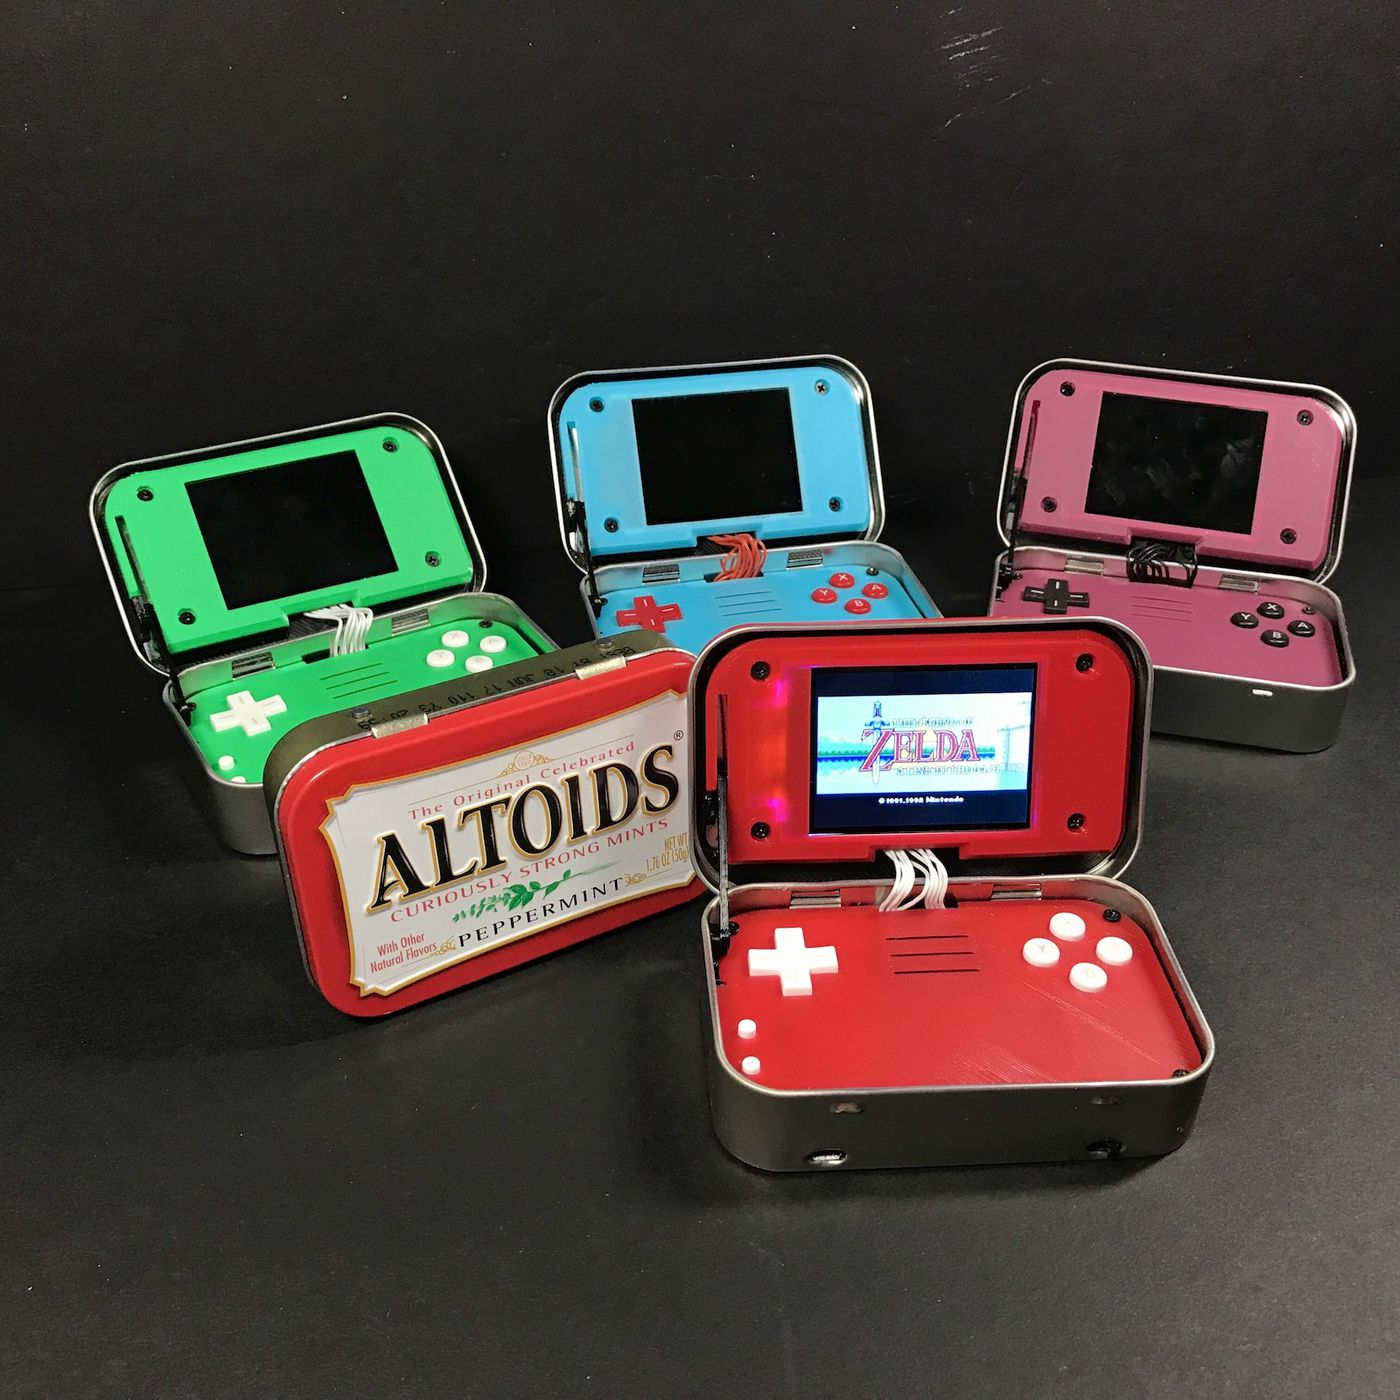 This Raspberry Pi game emulator disguised as an Altoids tin